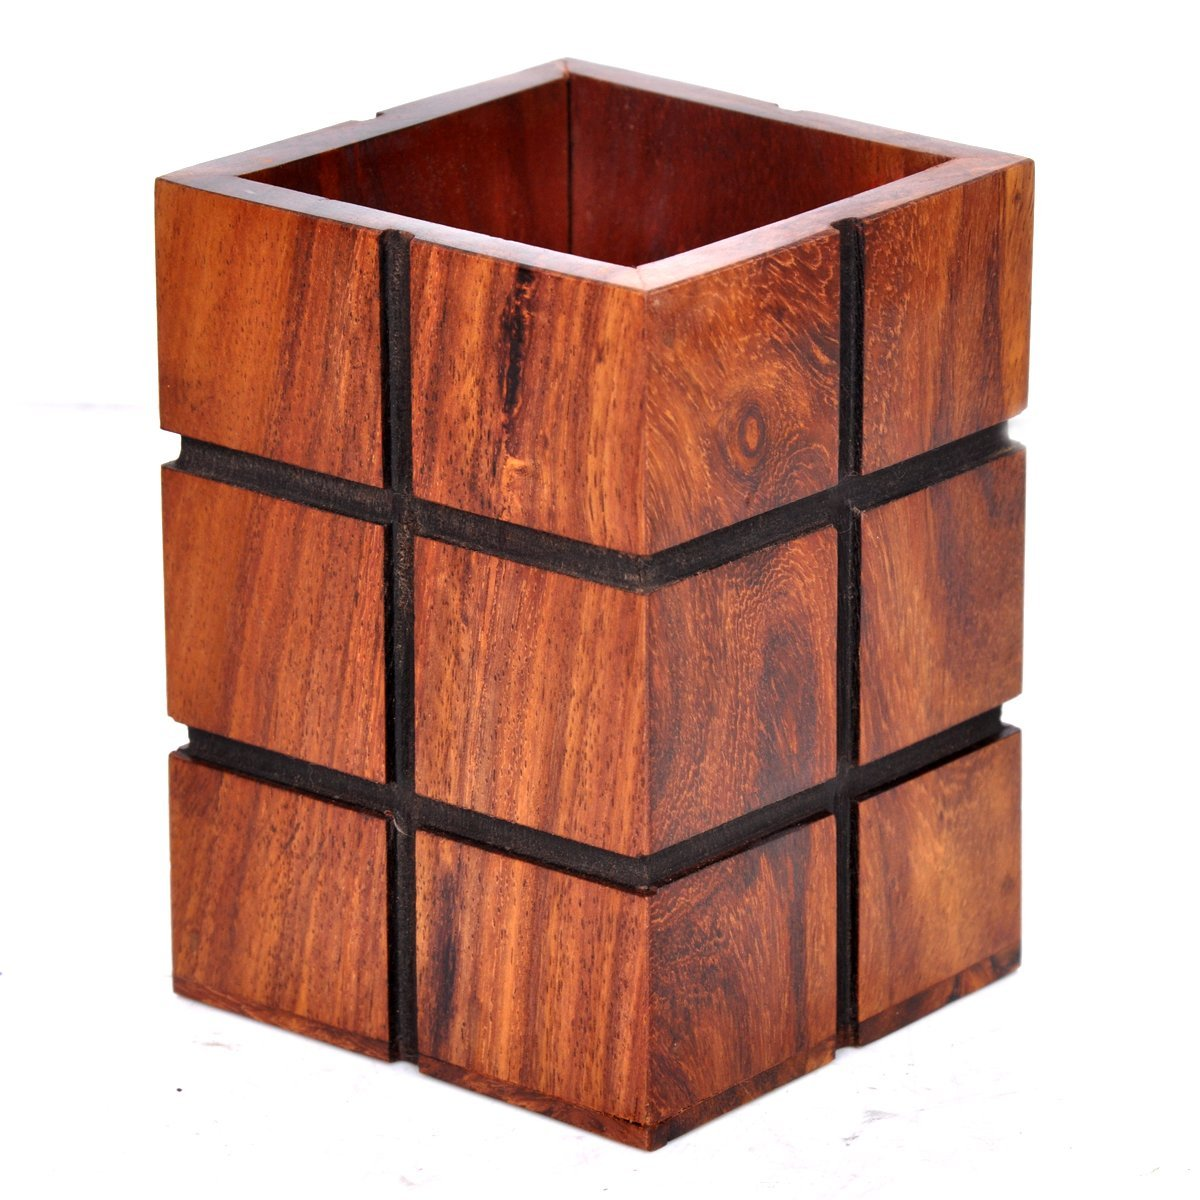 Hashcart Indian Rosewood Decorative Design Wooden Pen, Pencil Holder Handmade Traditional Storage Organiser for Desk, Office, Home Gift for Birthday by Hashcart (Image #1)